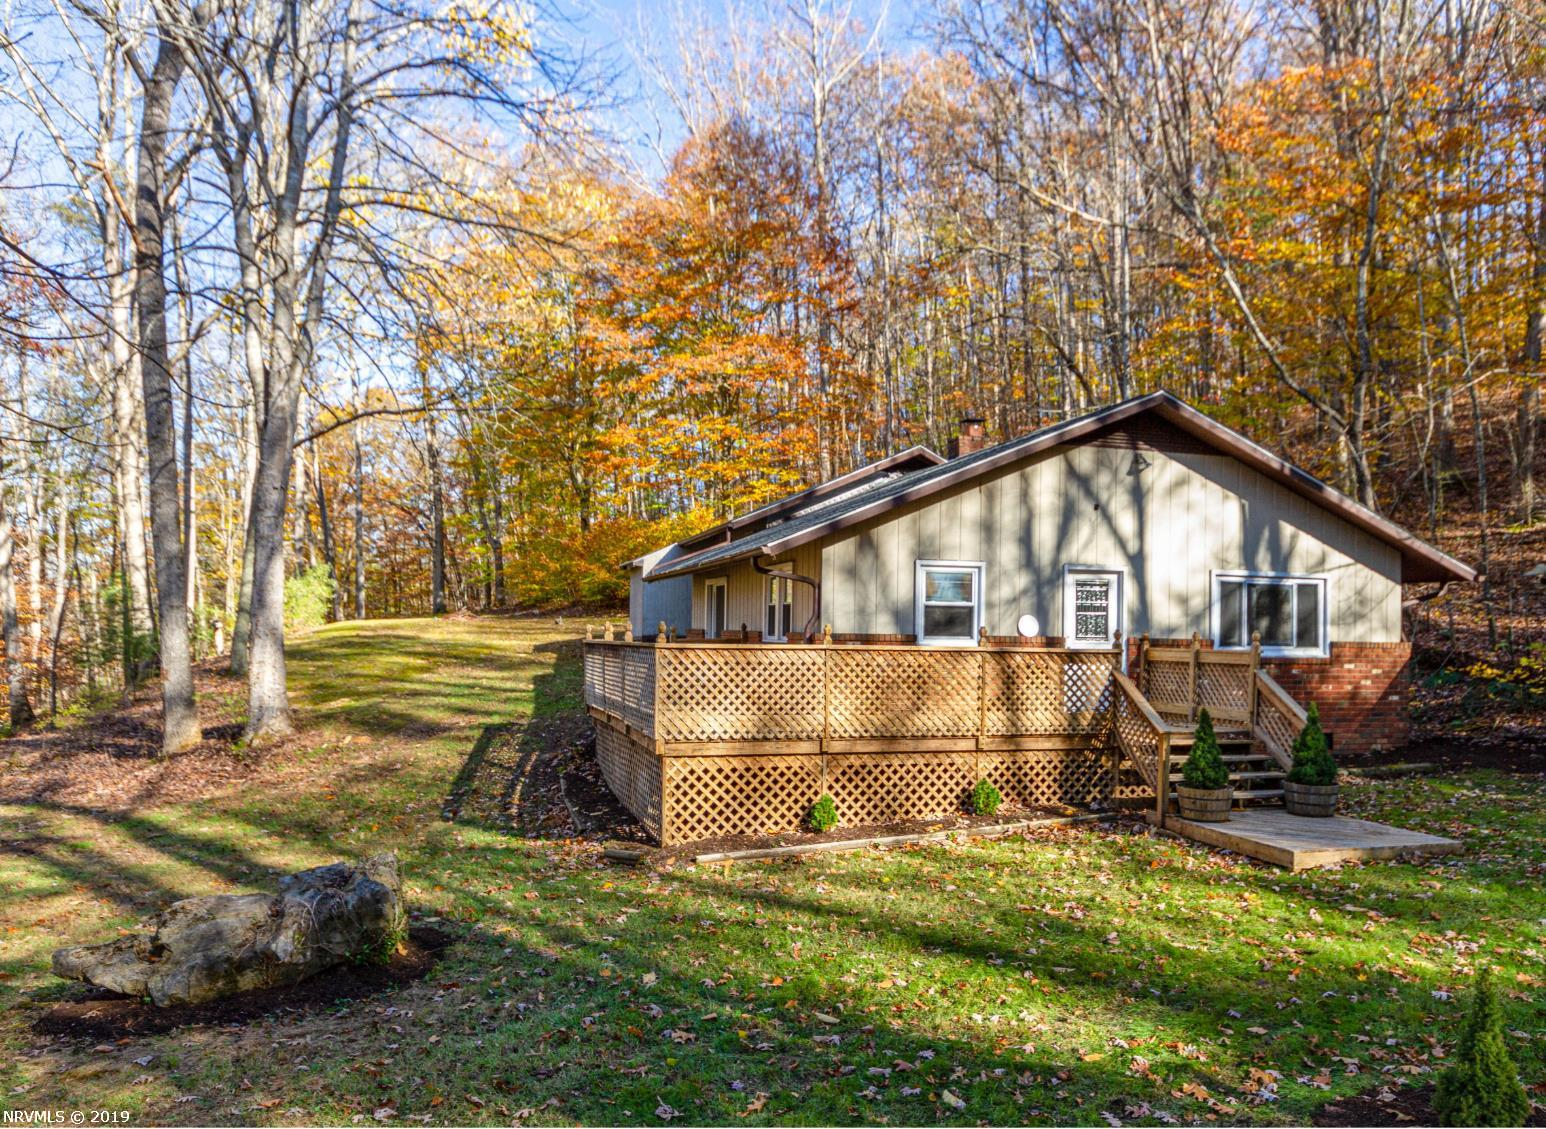 Beautifully remodeled cottage only 10 minutes from Blacksburg on 4 acres. Recently remodeled throughout with new appliances, bathrooms and freshly painted. Stunning stone fireplace, large rooms and gorgeous kitchen! New roof in April 2019, water heater in 2017, septic pumped in 2017, heat pump approximately 8 years old.